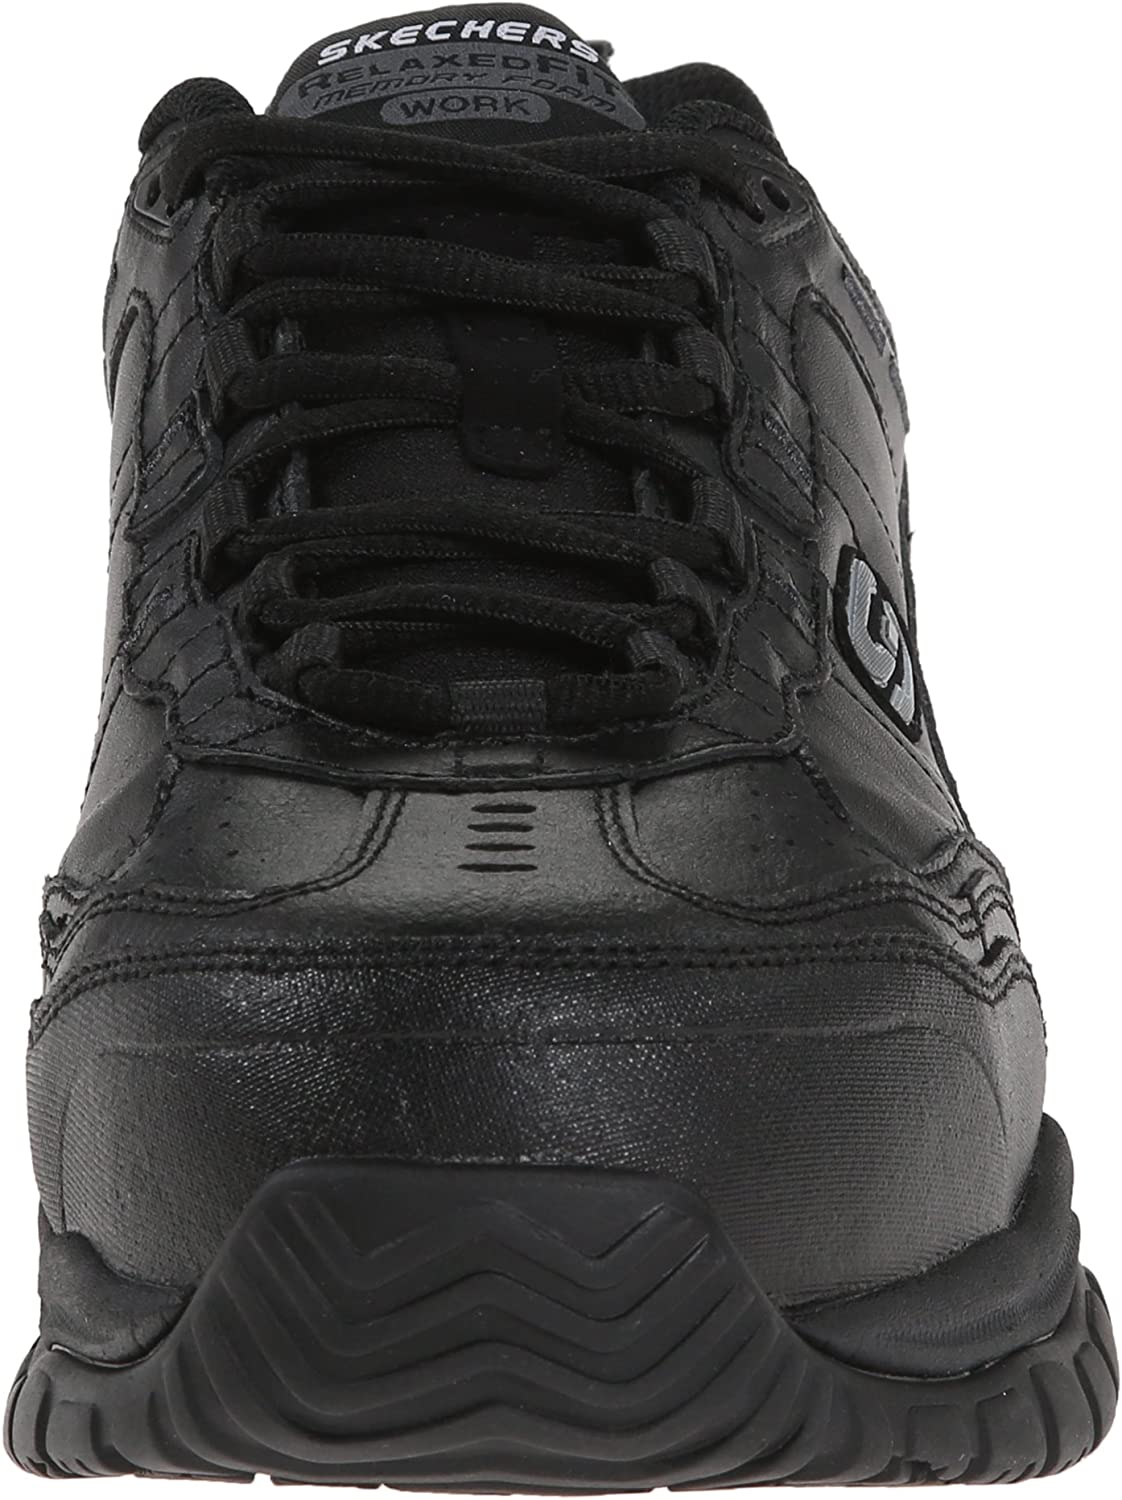 Skechers for Work Mens Soft Stride-Chatham Lace-Up Slip Resistant Sneaker